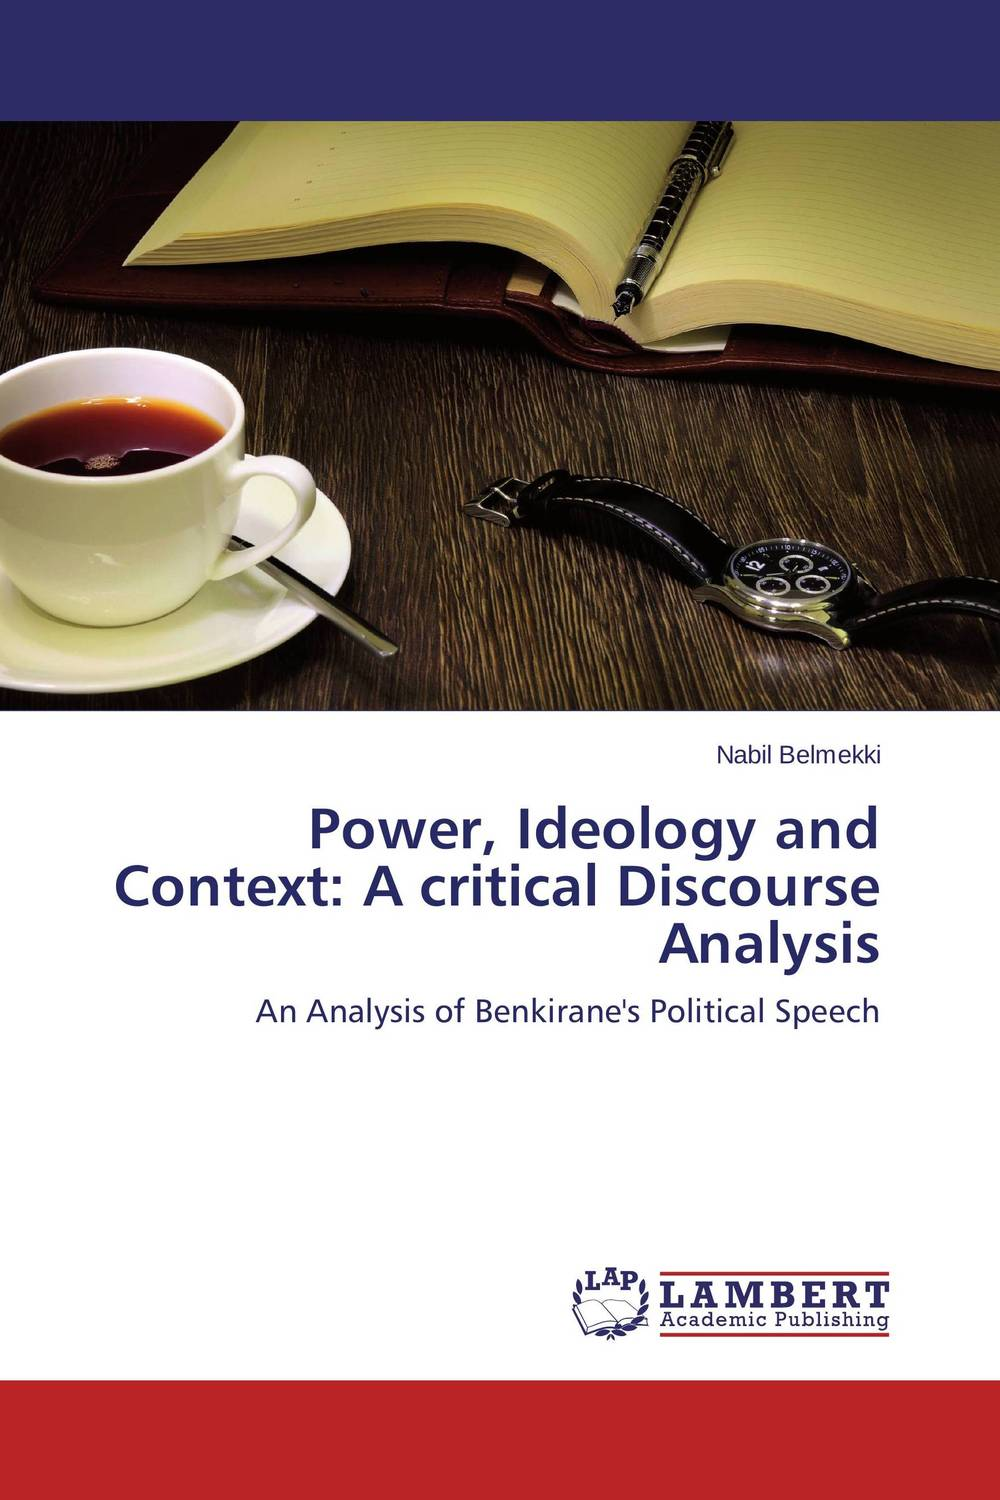 Power, Ideology and Context: A critical Discourse Analysis communities of discourse – ideology